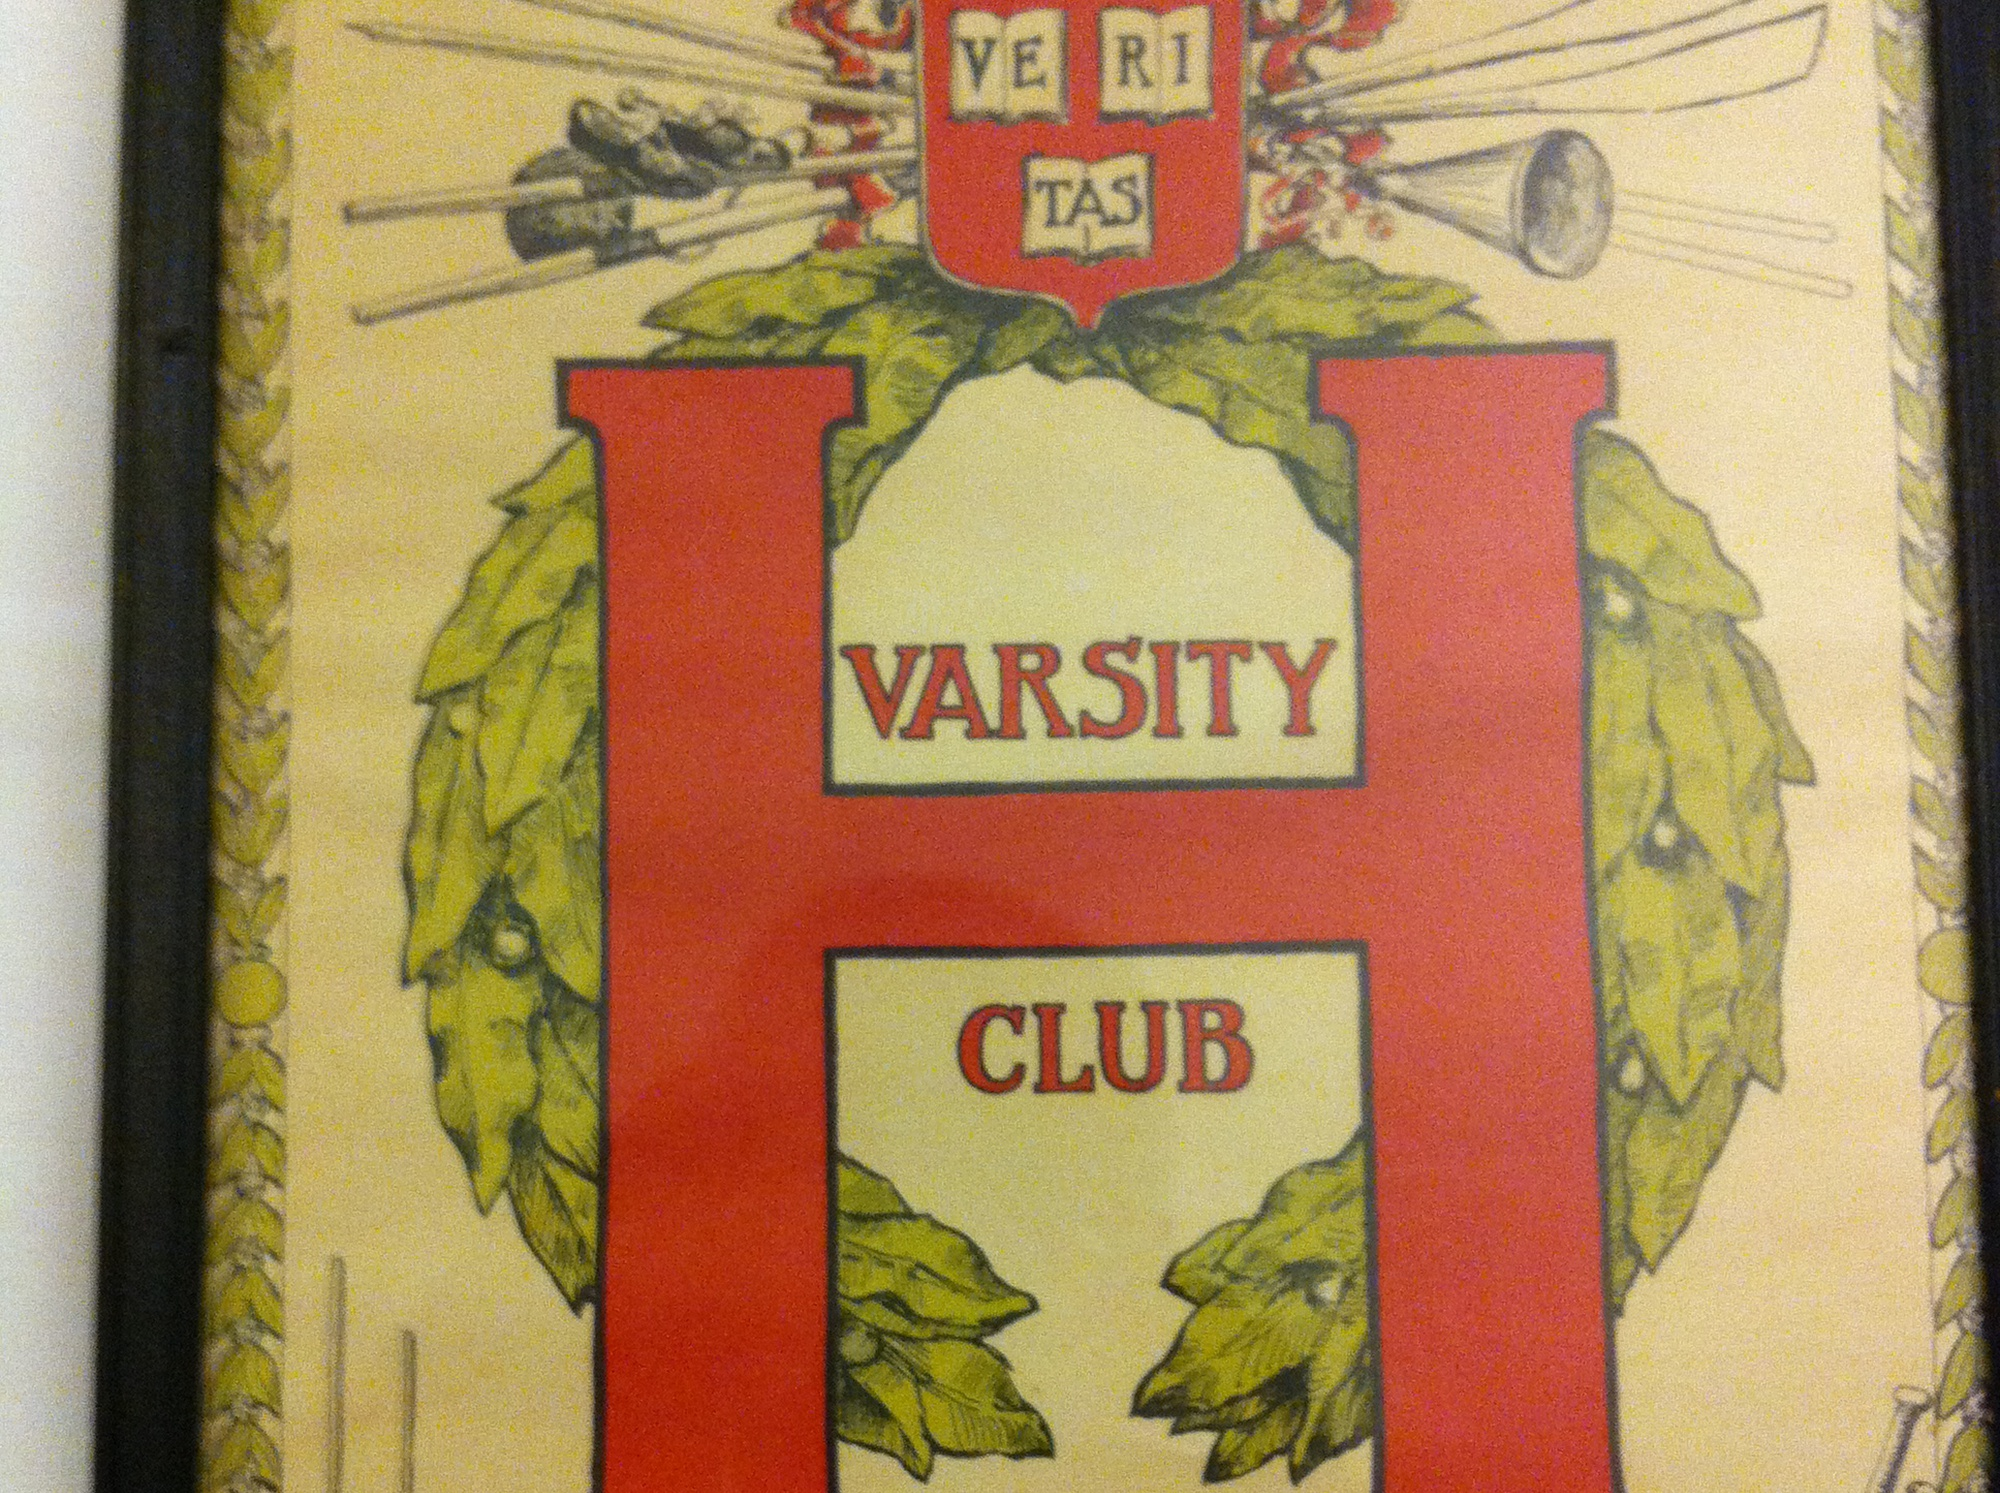 John Clark earned his member to the Harvard Varsity Club in 1948, with this certificate.